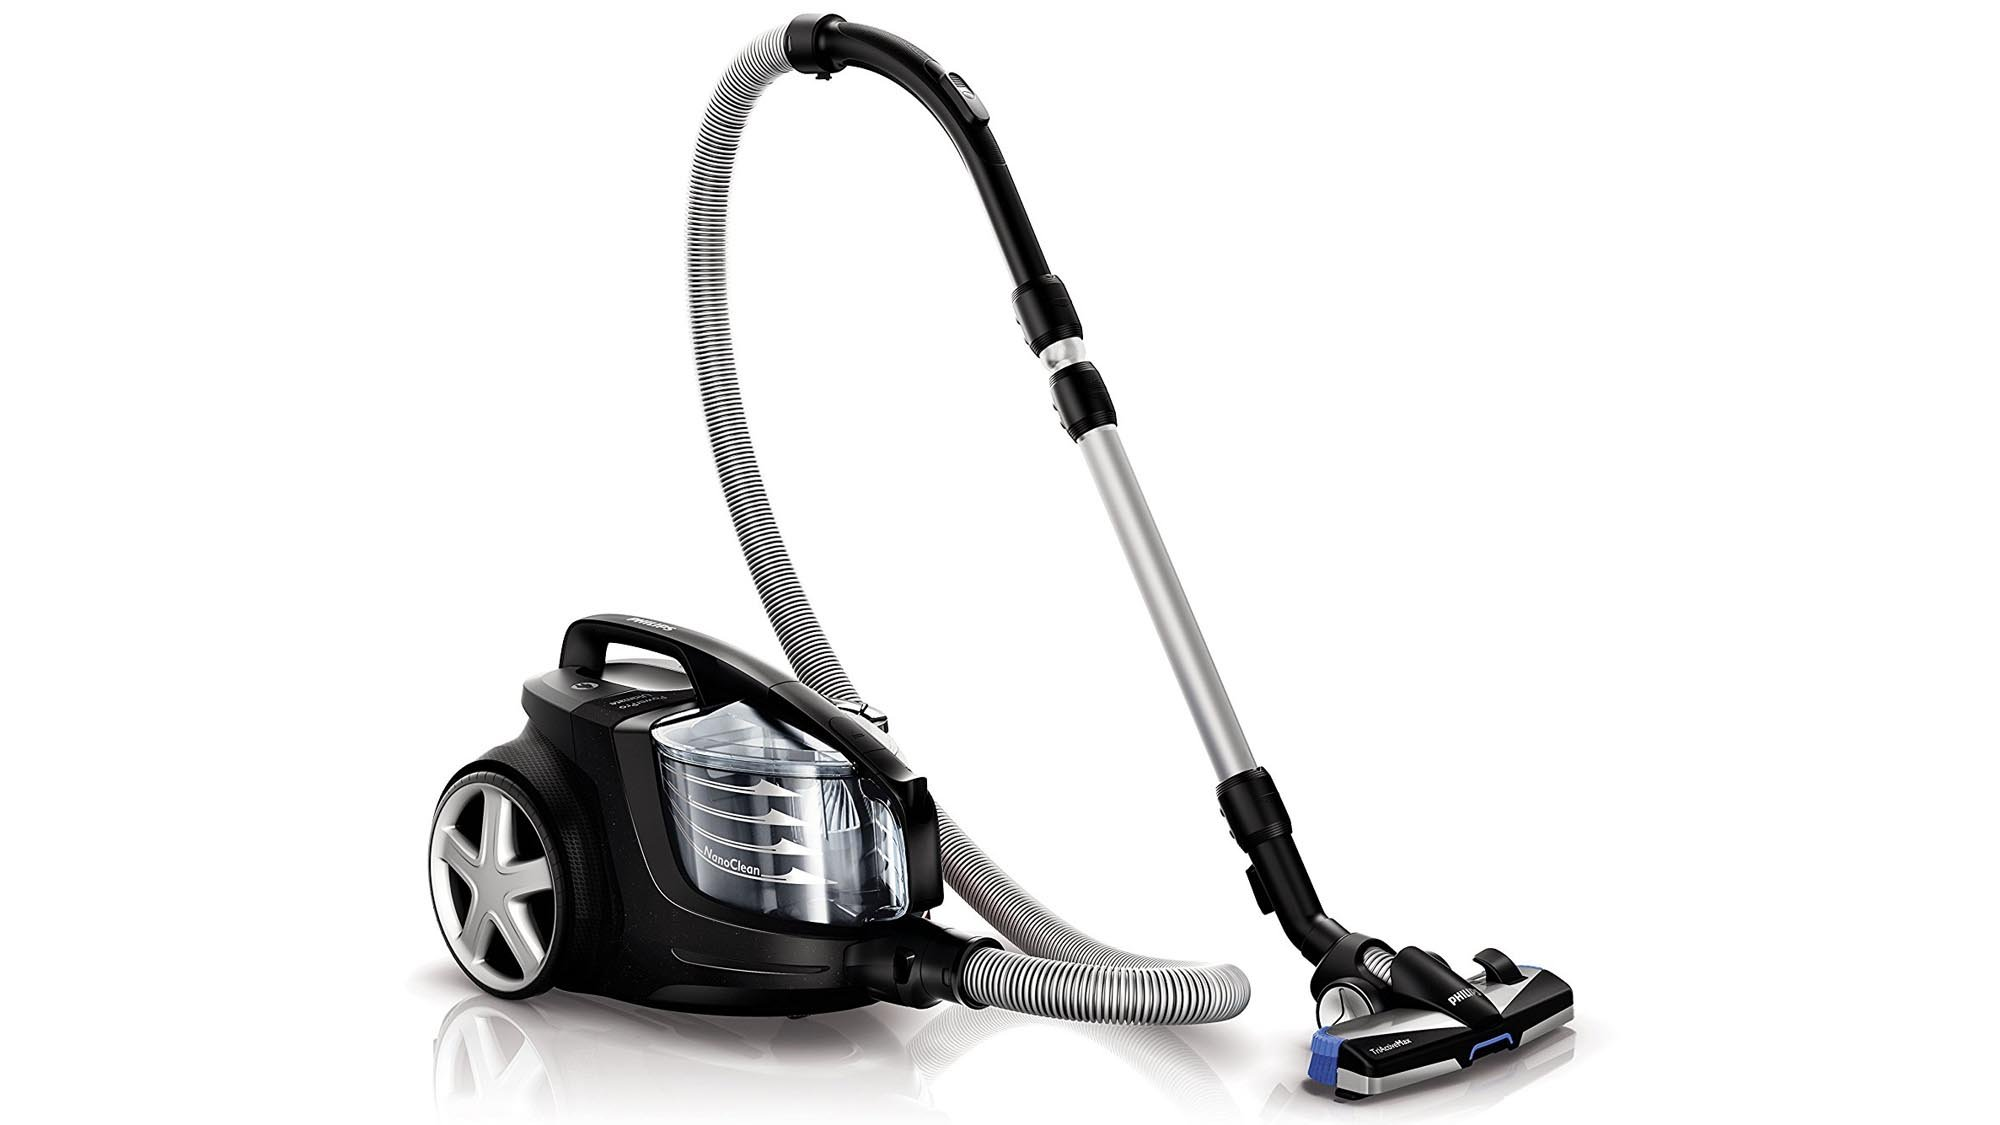 Philips cyclone vacuum cleaner review